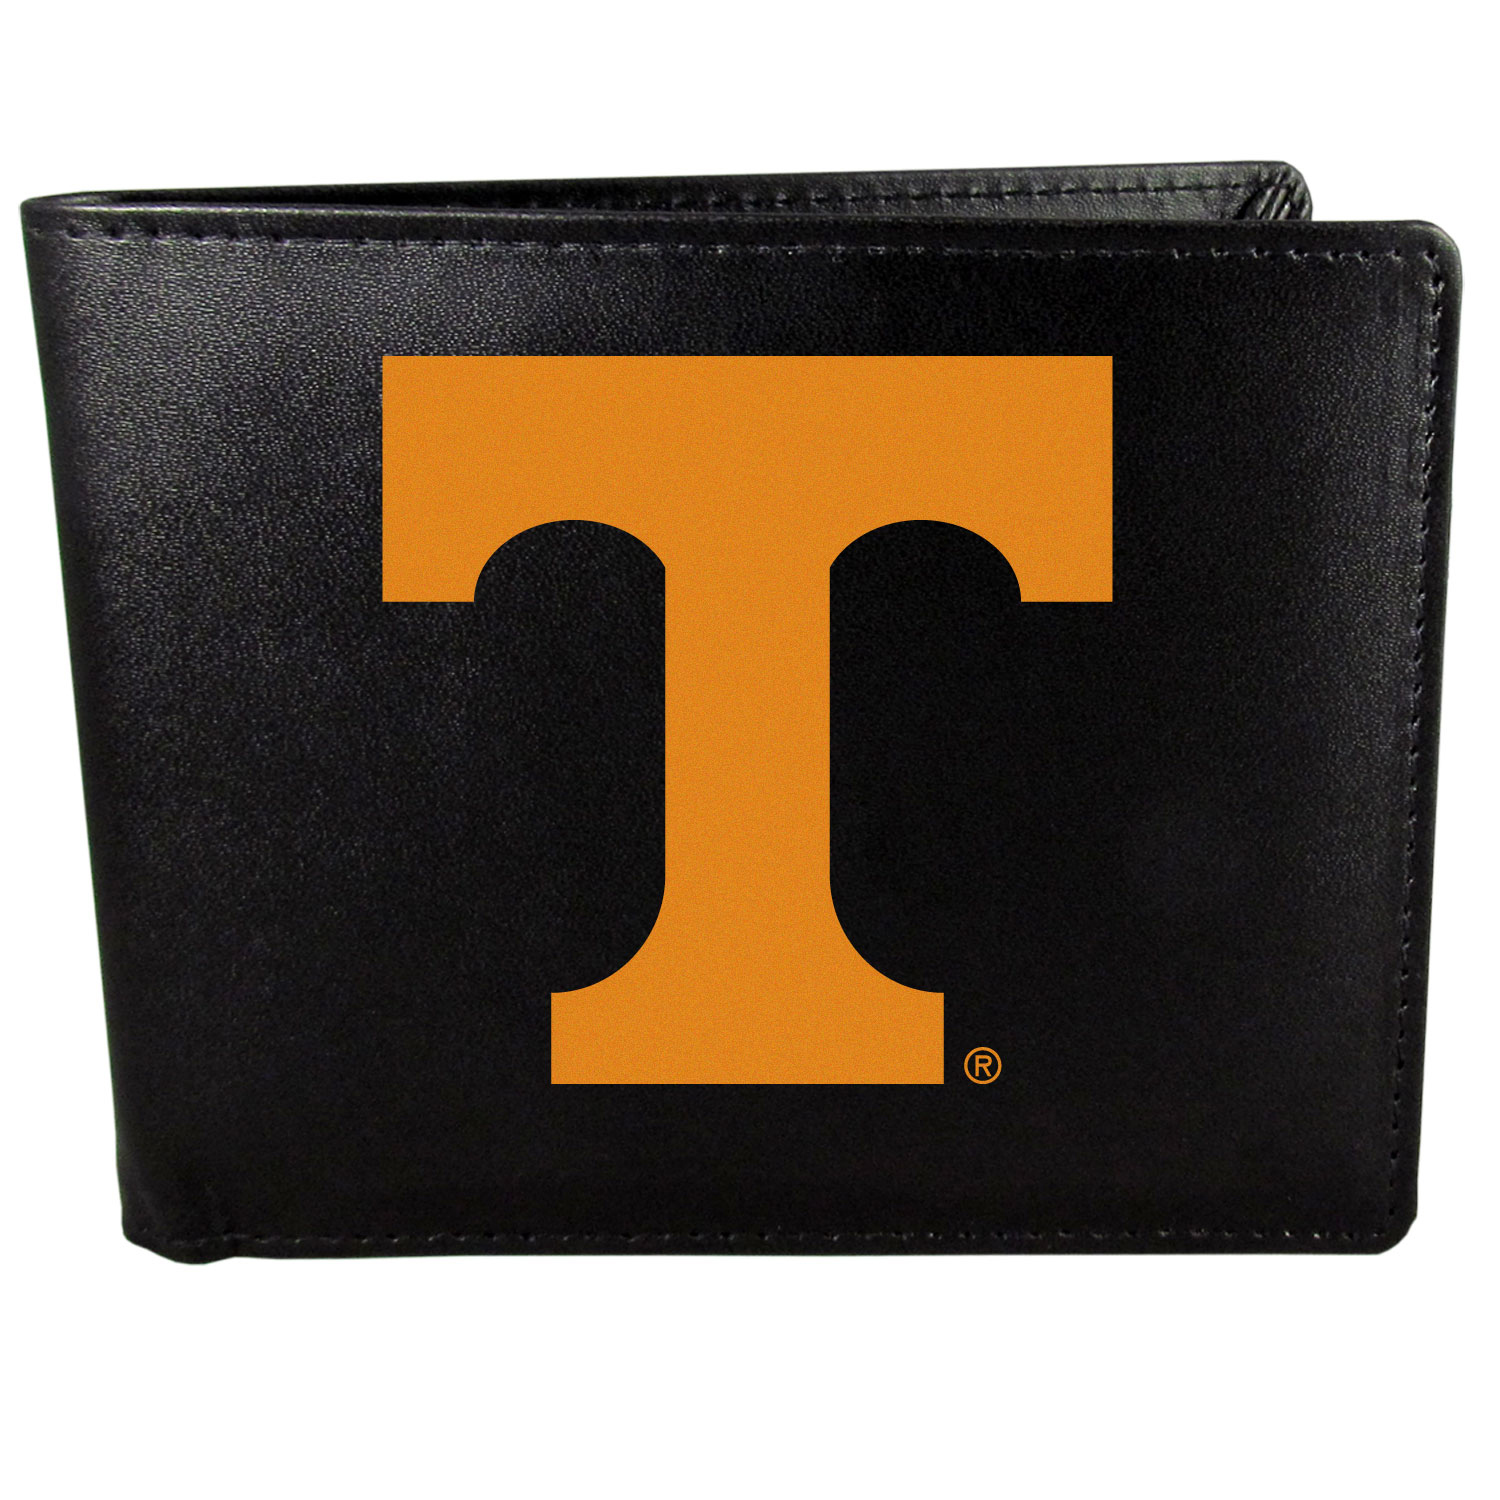 Tennessee Volunteers Leather Bi-fold Wallet, Large Logo - Our classic fine leather bi-fold wallet is meticulously crafted with genuine leather that will age beautifully so you will have a quality wallet for years to come. The wallet opens to a large, billfold pocket and numerous credit card slots and has a convenient windowed ID slot. The front of the wallet features an extra large Tennessee Volunteers printed logo.